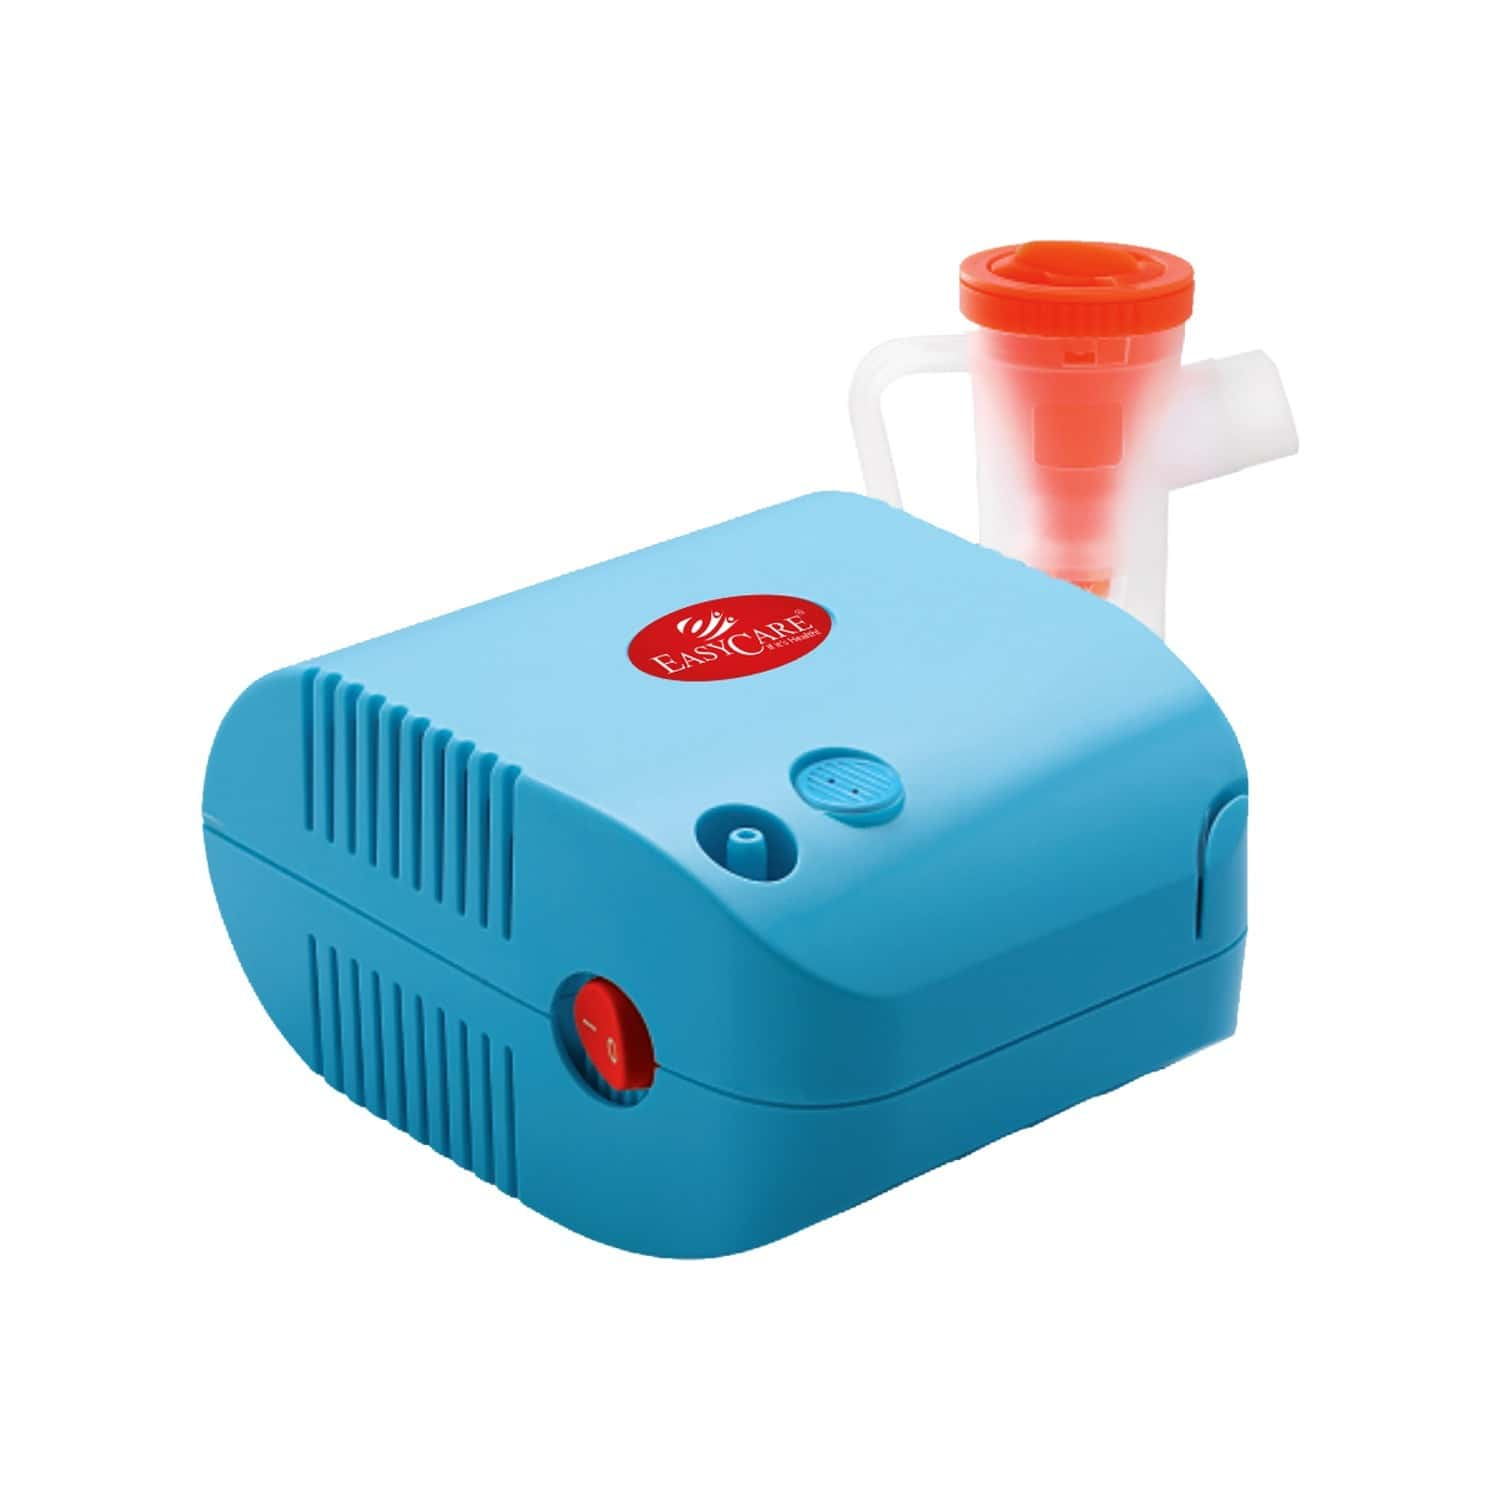 Easycare Compressor Nebulizer Perfect For All Ages Along With Air Flow Controller (certified By Ce, Iso) Handle To Carry Easy